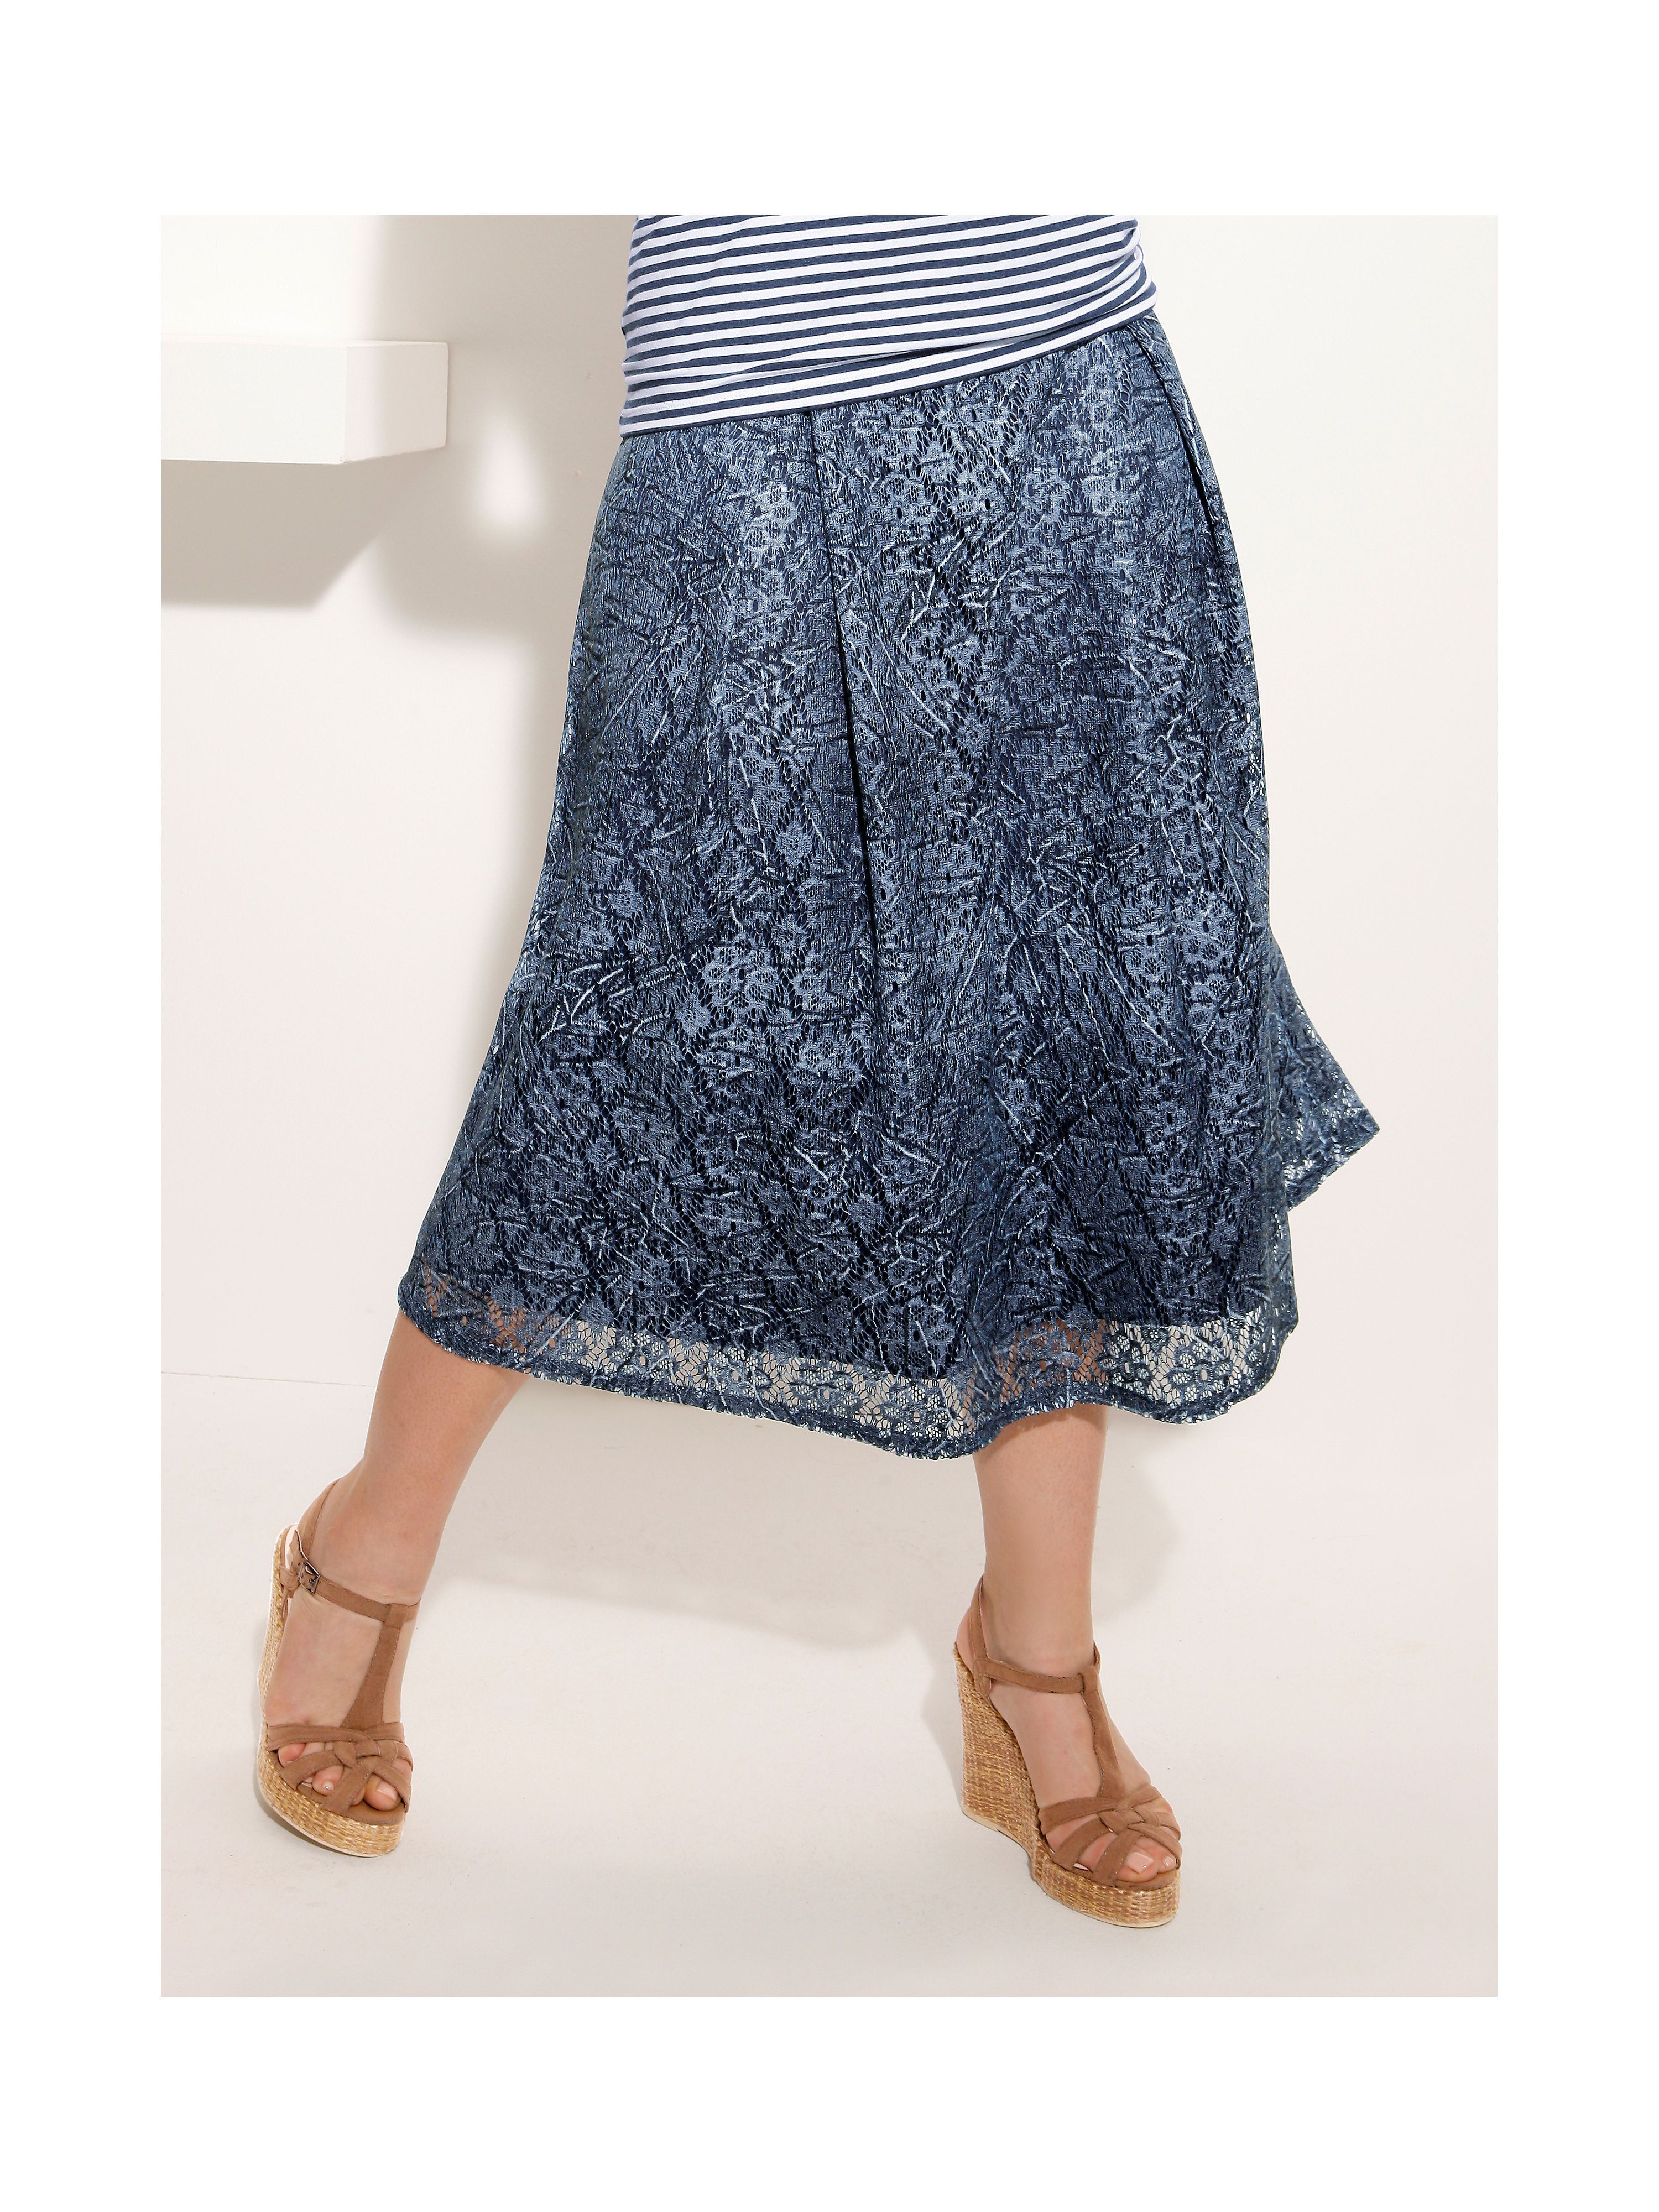 Plus Size Skirts Our hundreds of plus-size skirts elevate your wardrobe with elegant style and uncompromising quality and fit. With so many perfect options in sizes S to 6X, and One Size, you'll want to pair a fun, flirty way skirt with a casual tee shirt or a dressy blouse or top for every occasion.